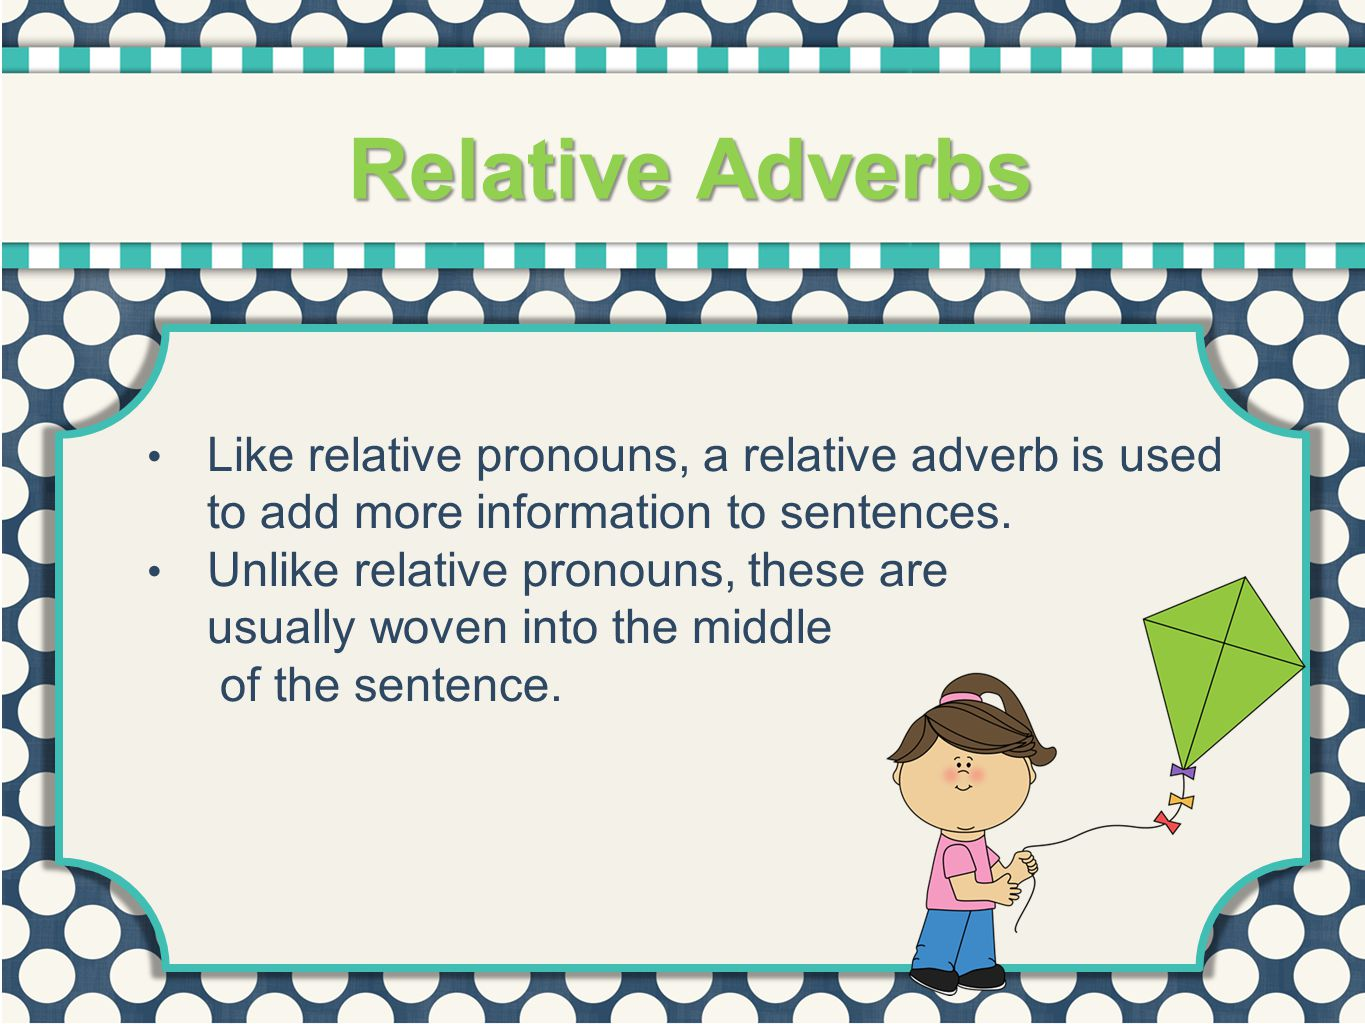 Relative Adverbs Like relative pronouns, a relative adverb is used to add more information to sentences.